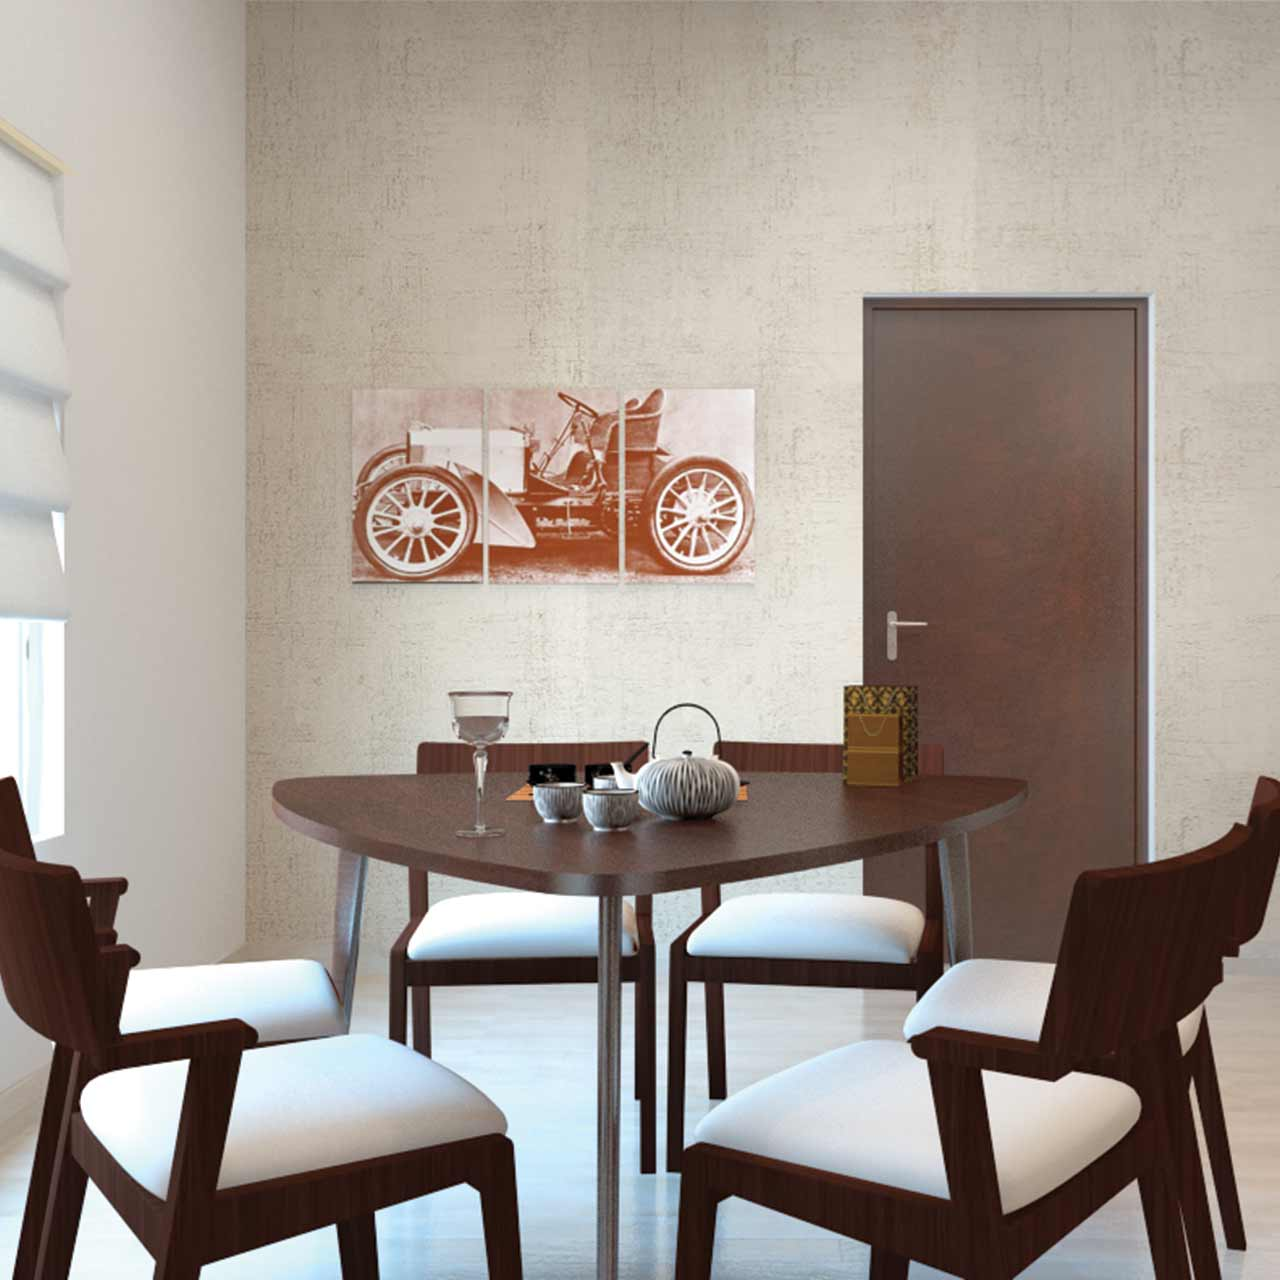 Dining room decor to carry forward the design style of your dining table to the seating with these dining room decor ideas